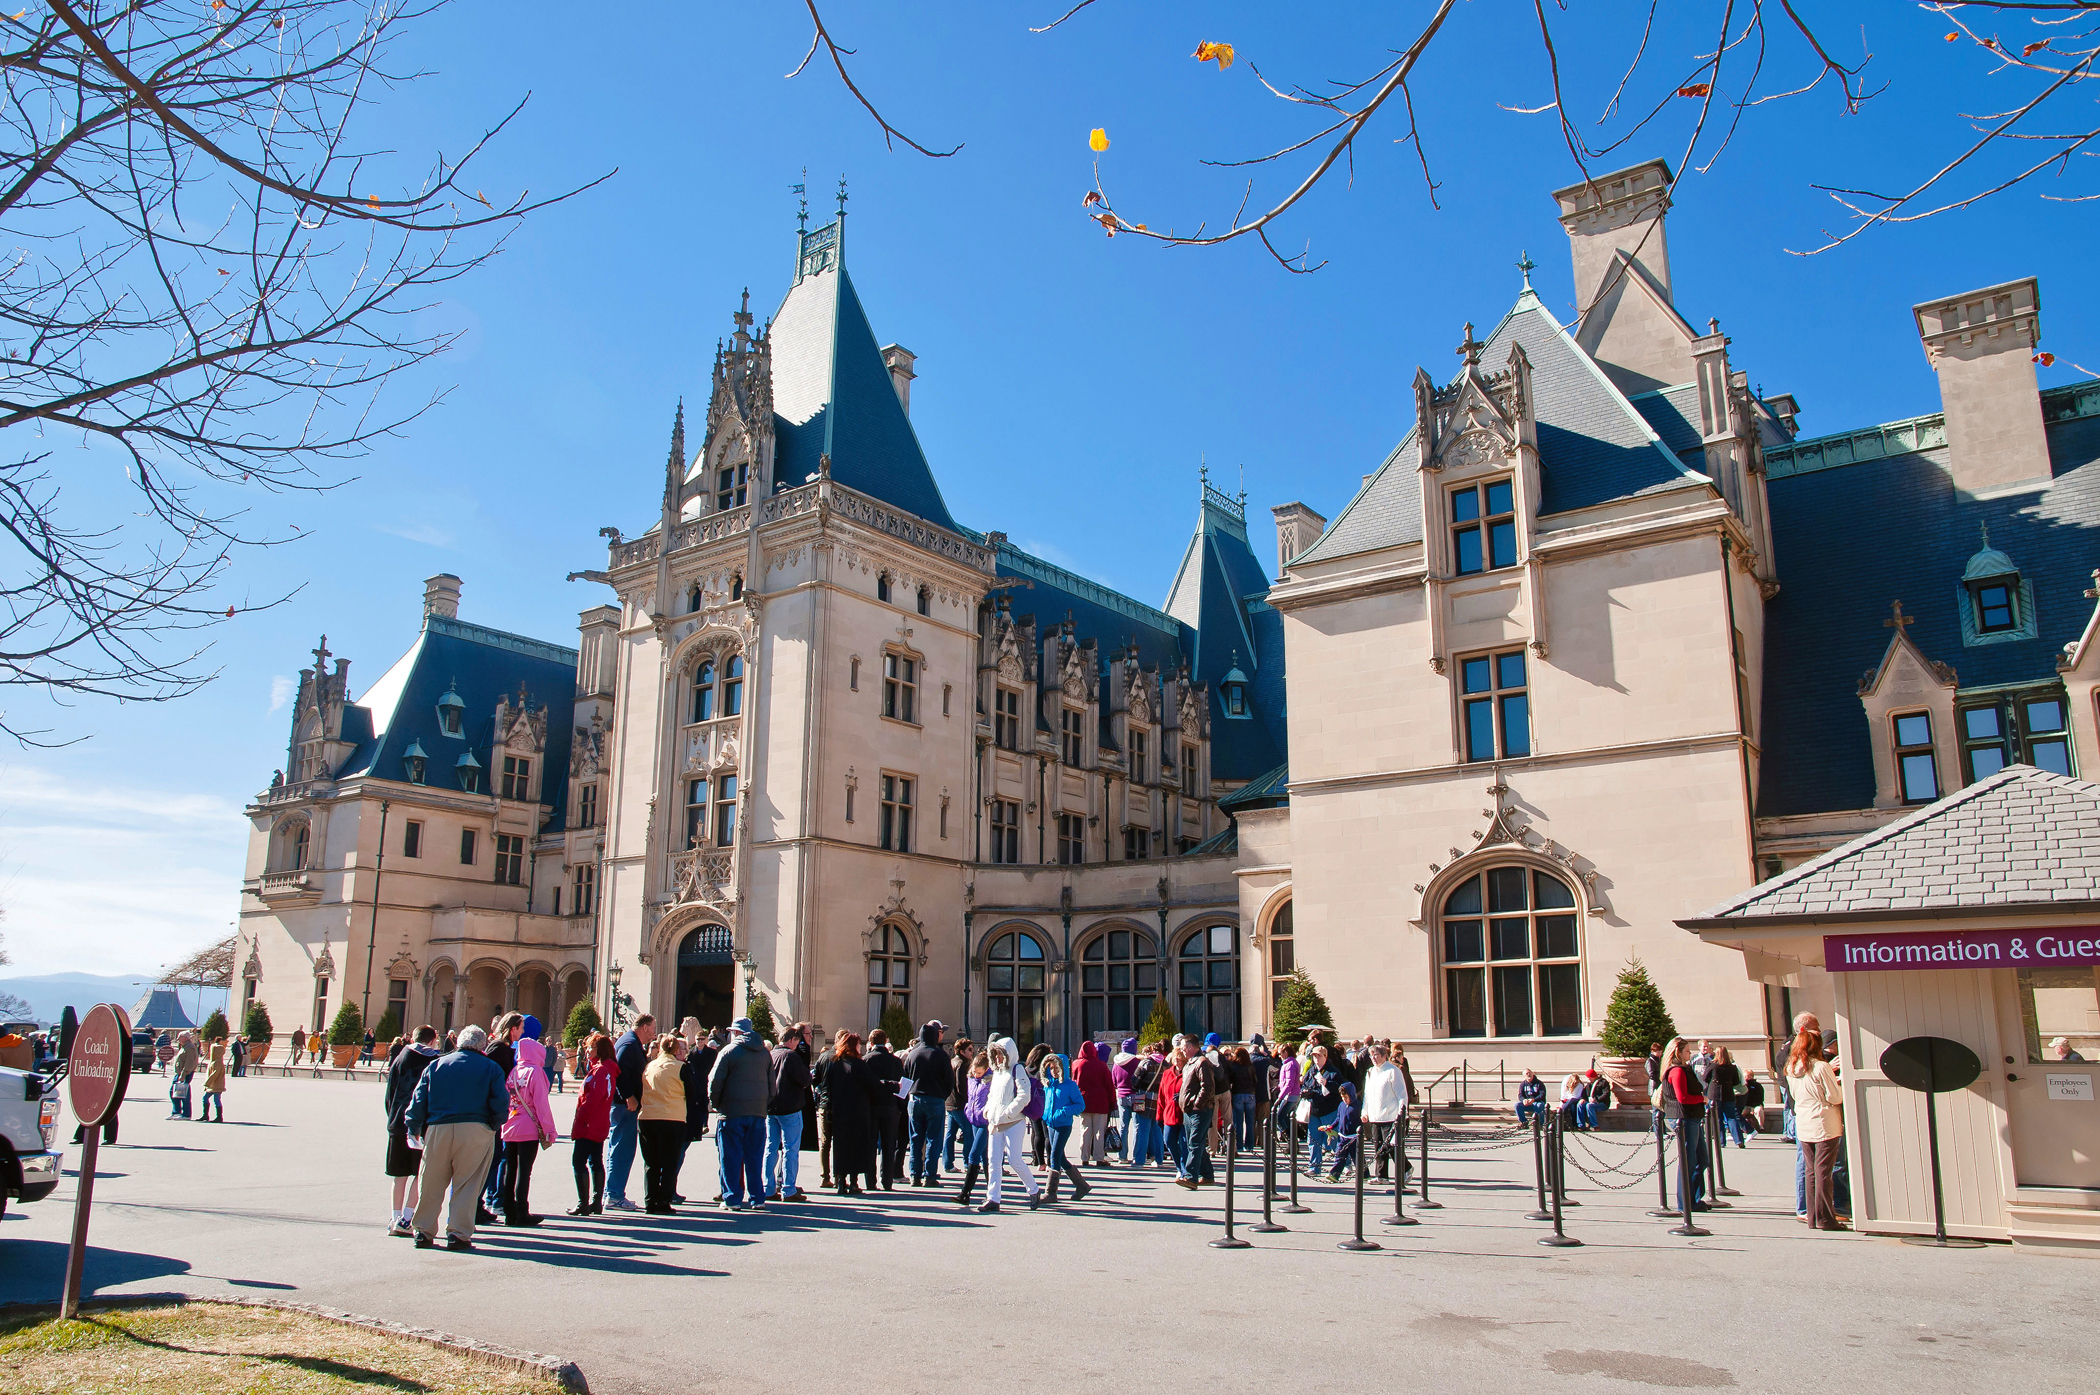 Biltmore House was once the largest private home in the U.S.